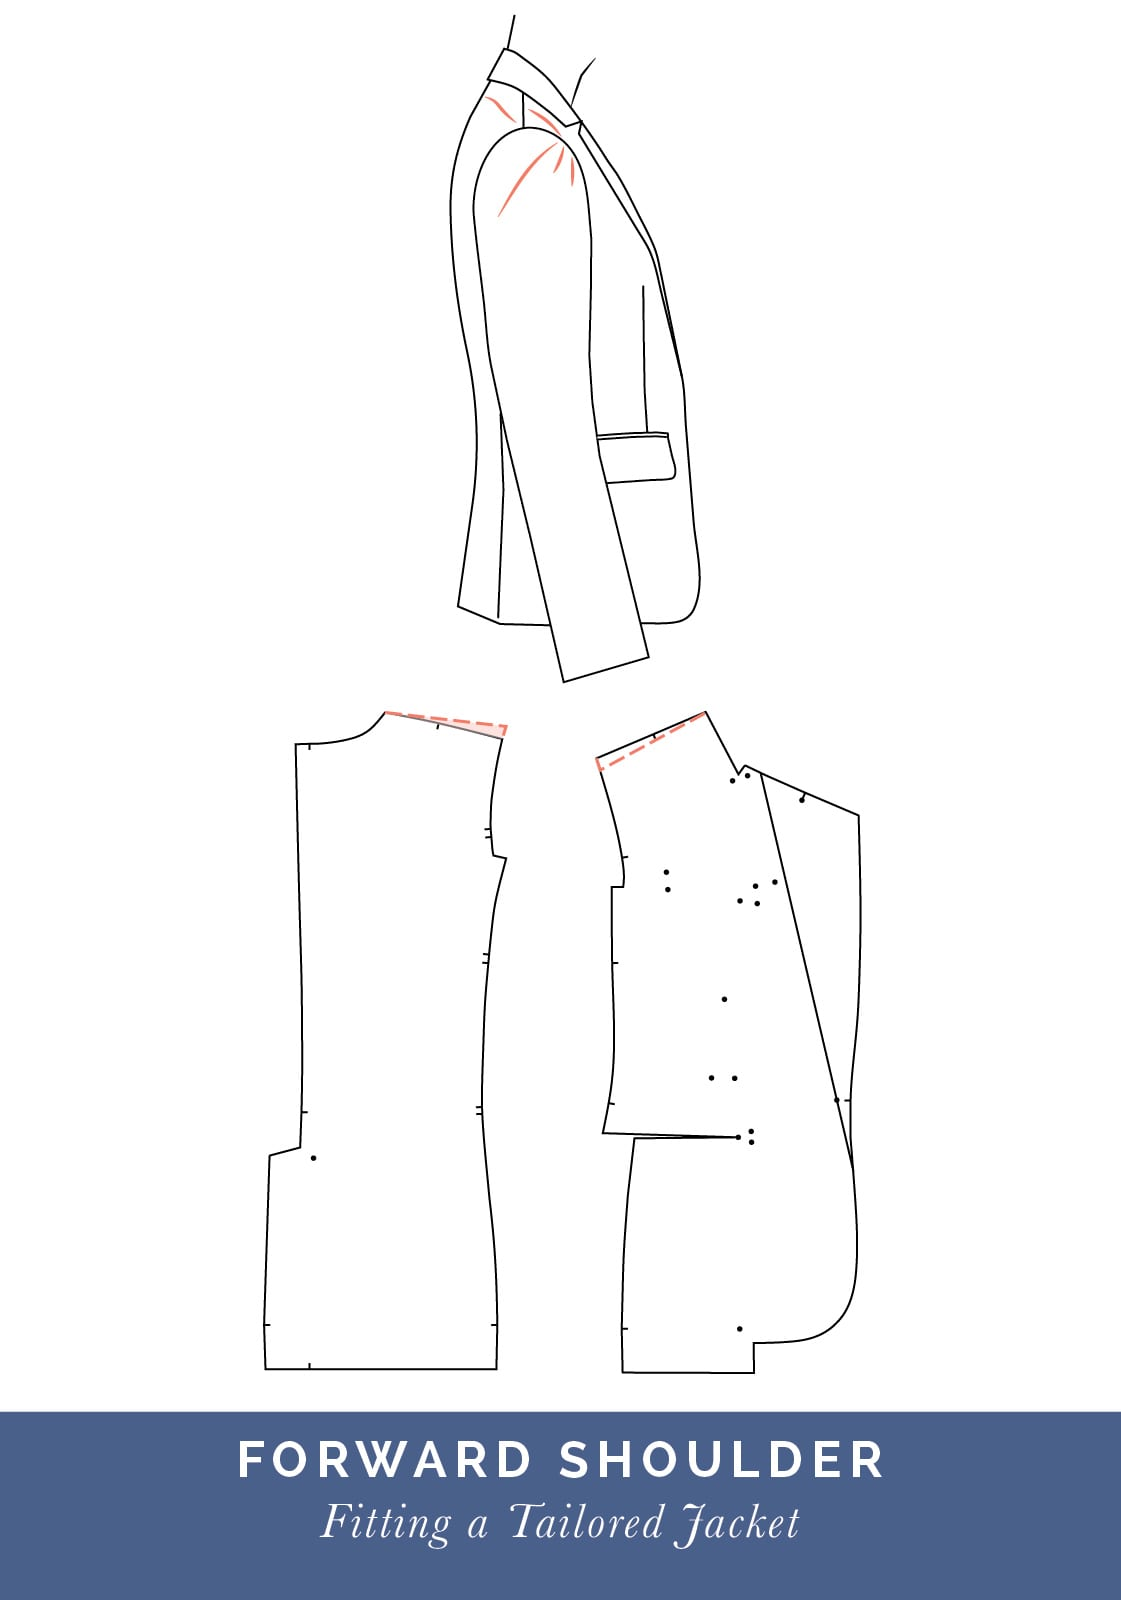 Forward shoulder adjustment // How to fit a Tailored jacket or Blazer // Fit adjustment issues and fixes